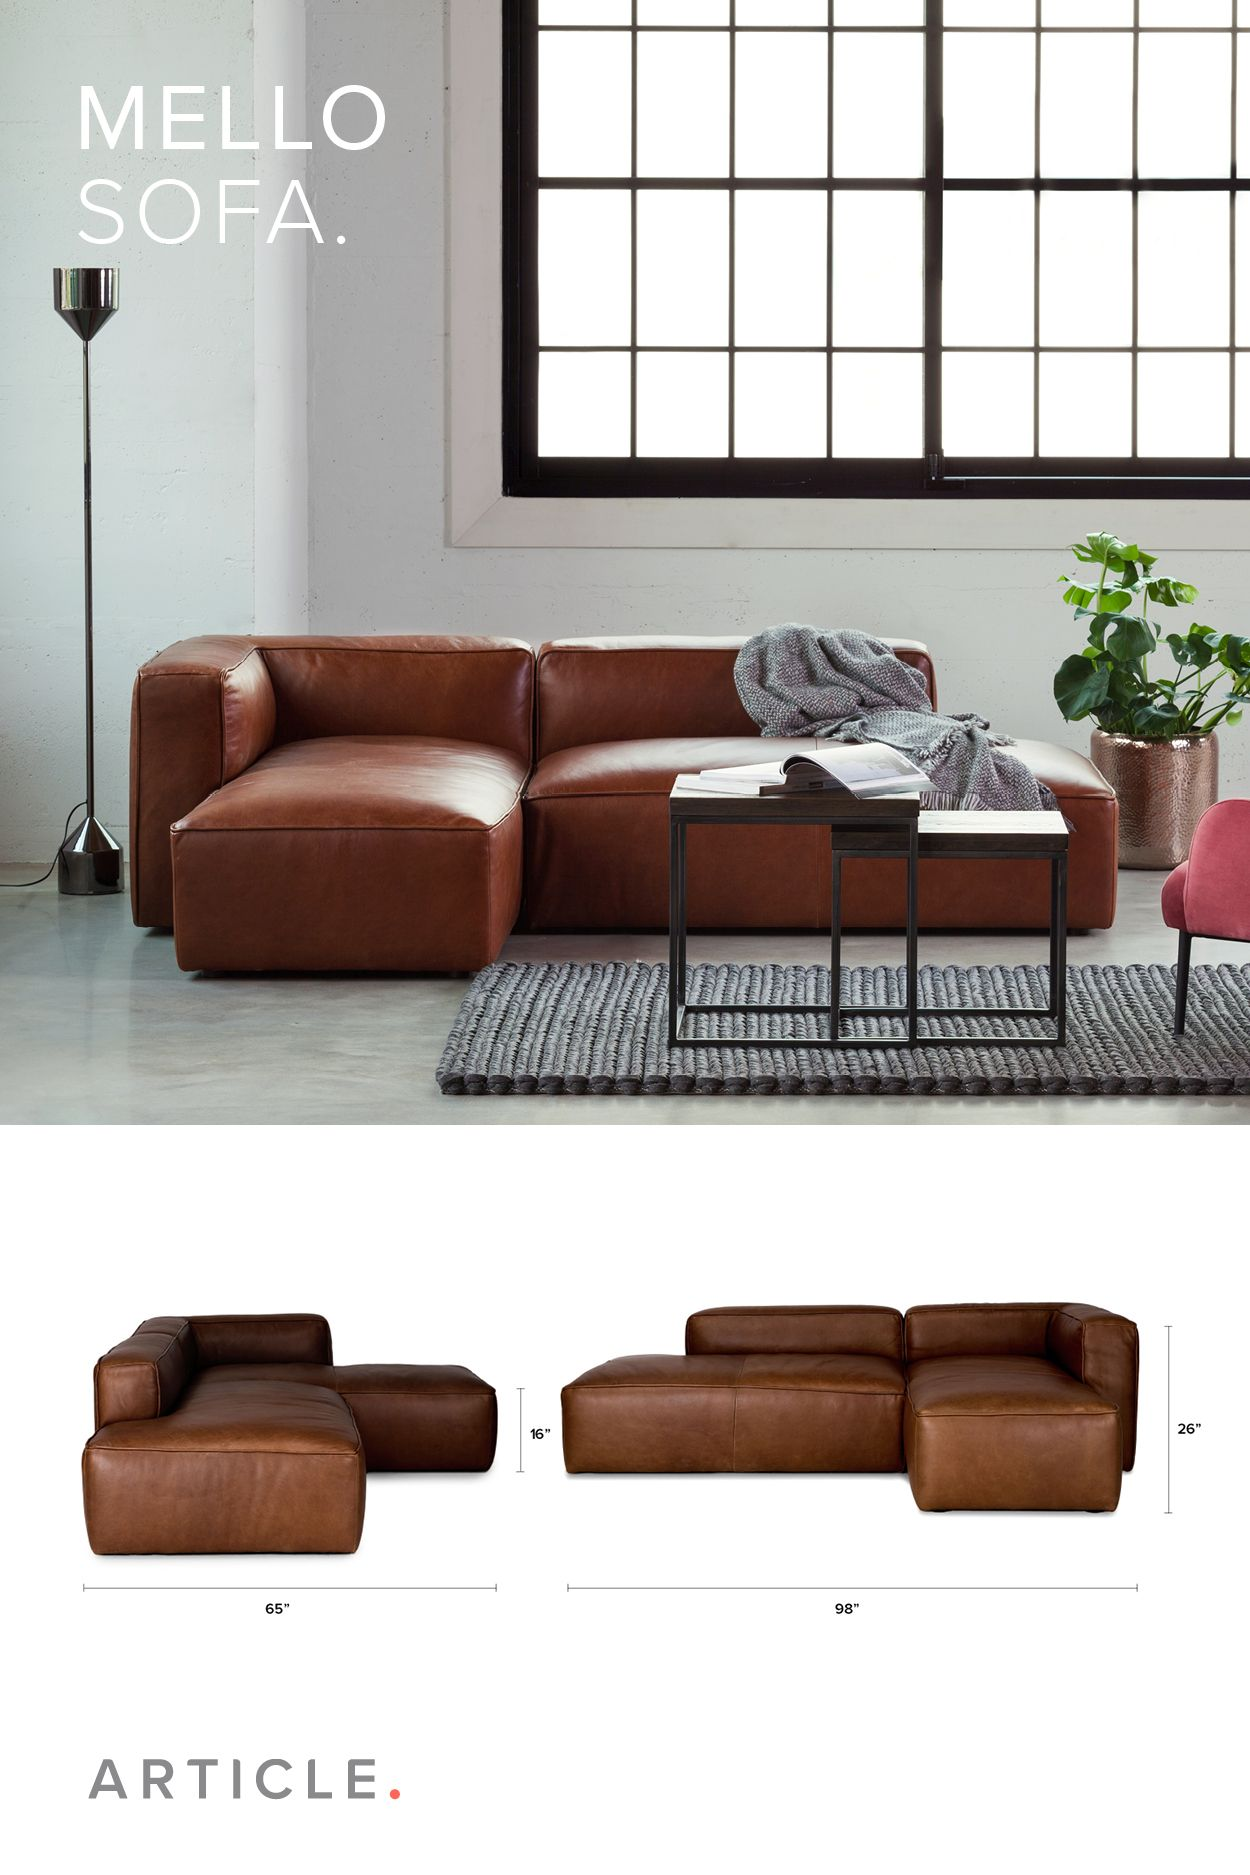 Taking The Cake For Comfort And Style The Mello Sofa Is Modular Offering Endless Configurations Living Room Loft Home Living Room Living Room Inspiration